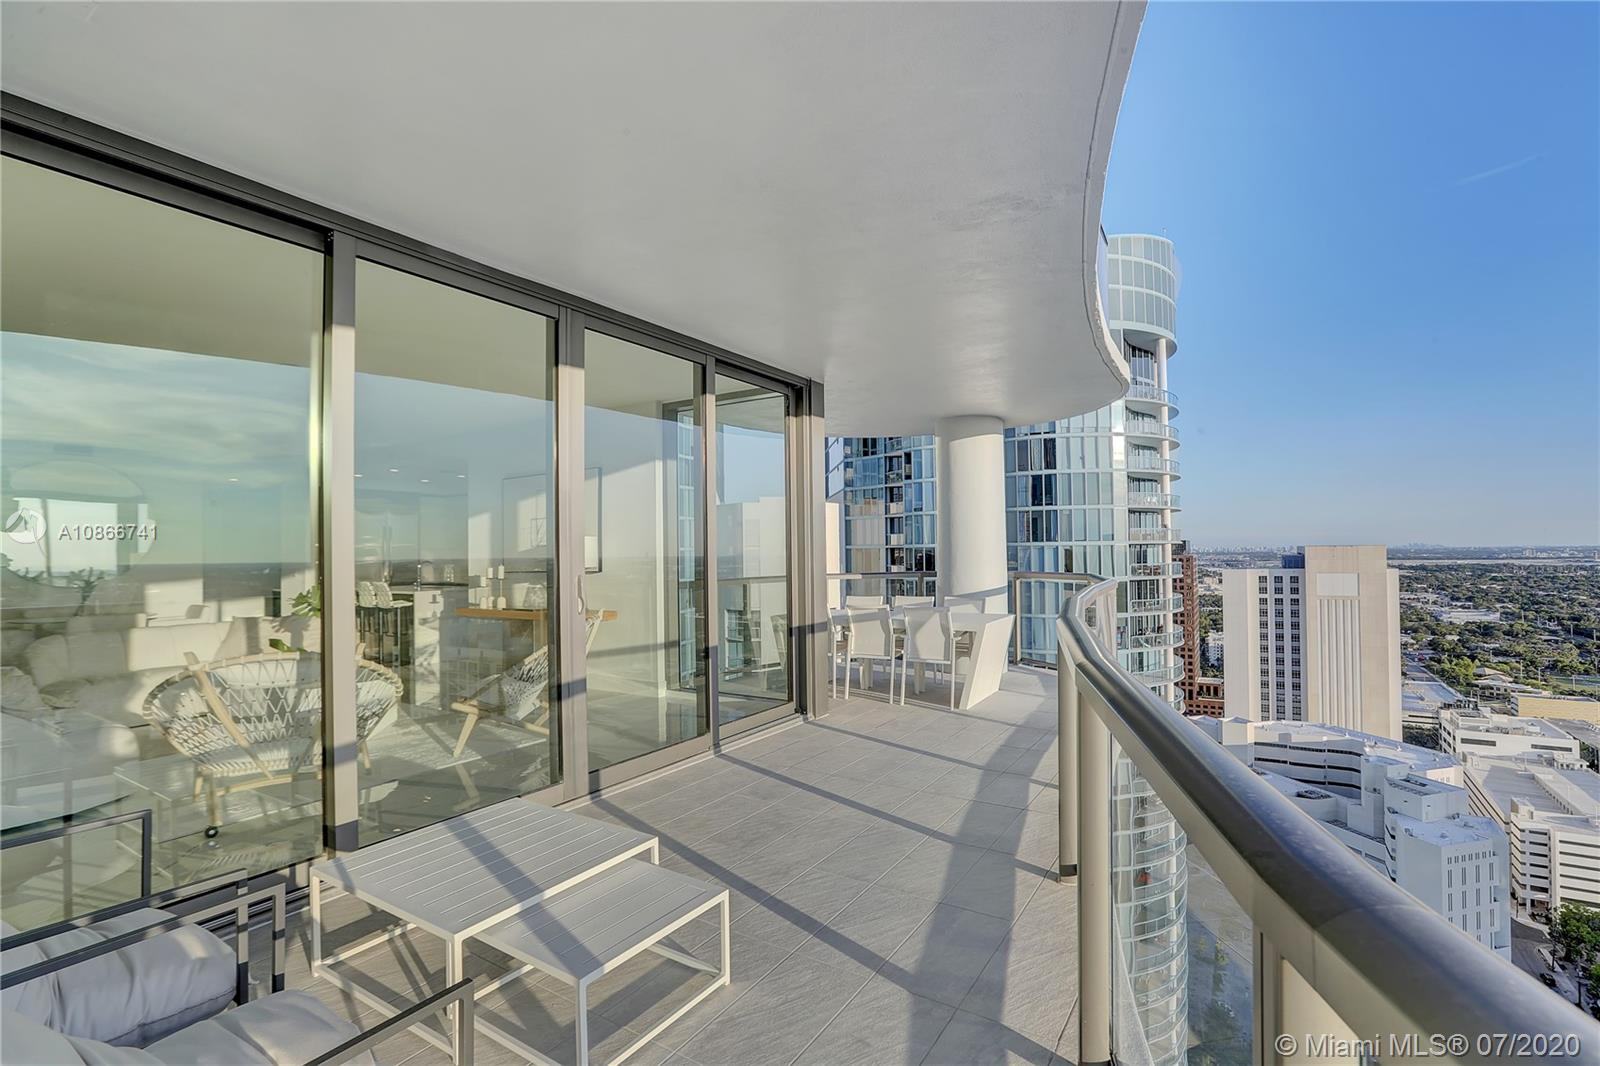 The newest and most luxurious building in downtown is move in ready! This spectacular penthouse features 3 exposures and offers our most direct river view. The great room and master bedroom open onto the expansive terrace with 3 distinct seating areas. With porcelain flooring throughout, a gourmet kitchen with European cabinets, quartz counter tops, top of the line Jenn Air appliances, and Grohe fixtures throughout, this residence is an urban oasis of luxury. The master suite features 2 walk-in closets and a luxuriously appointed bathroom. Additional features include high ceilings, a laundry room with side by side whirlpool washer and dryer and an abundance of additional storage.